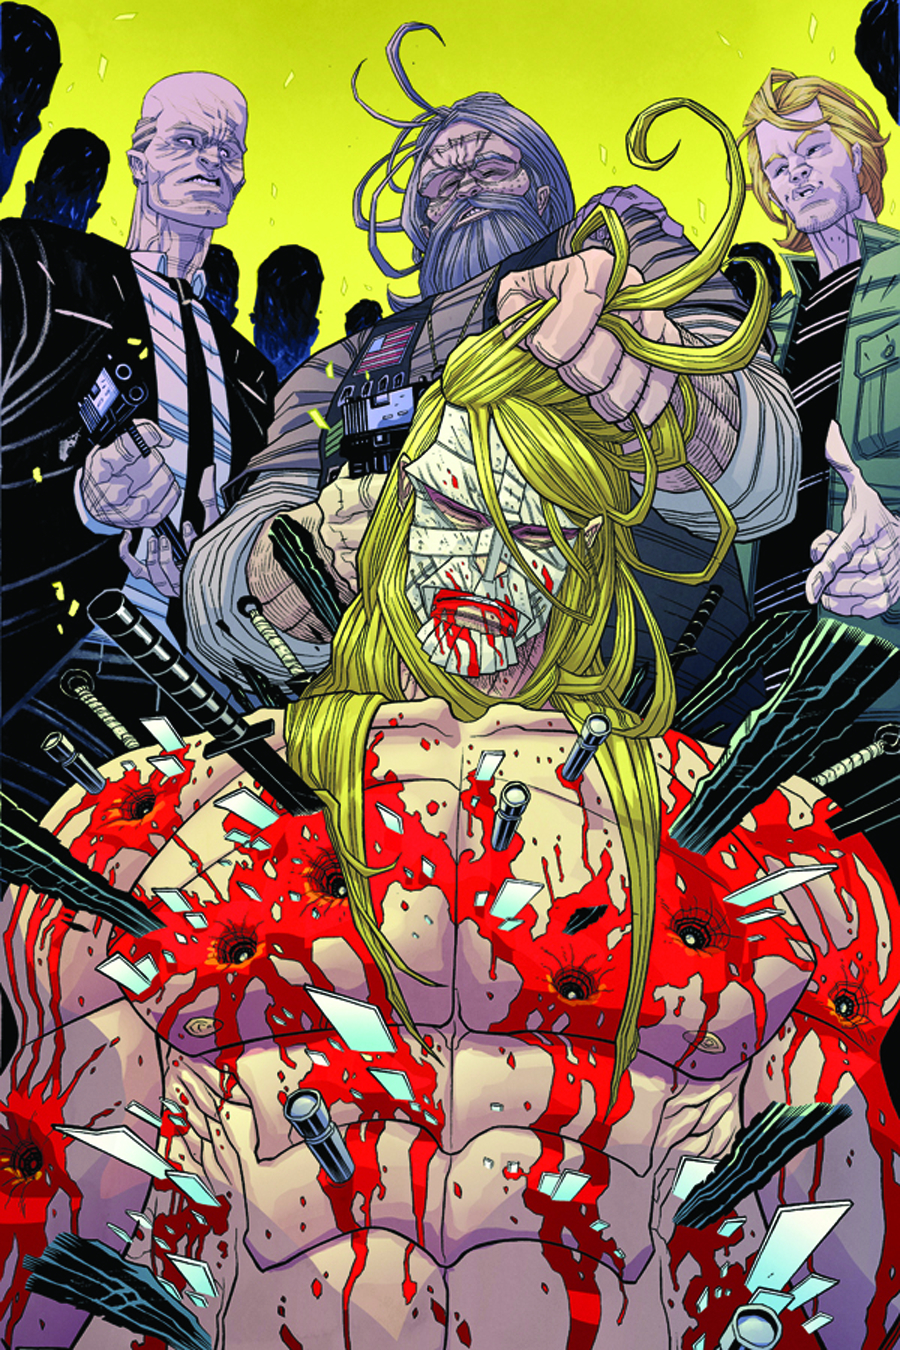 LEGEND OF LUTHER STRODE #3 (OF 6)